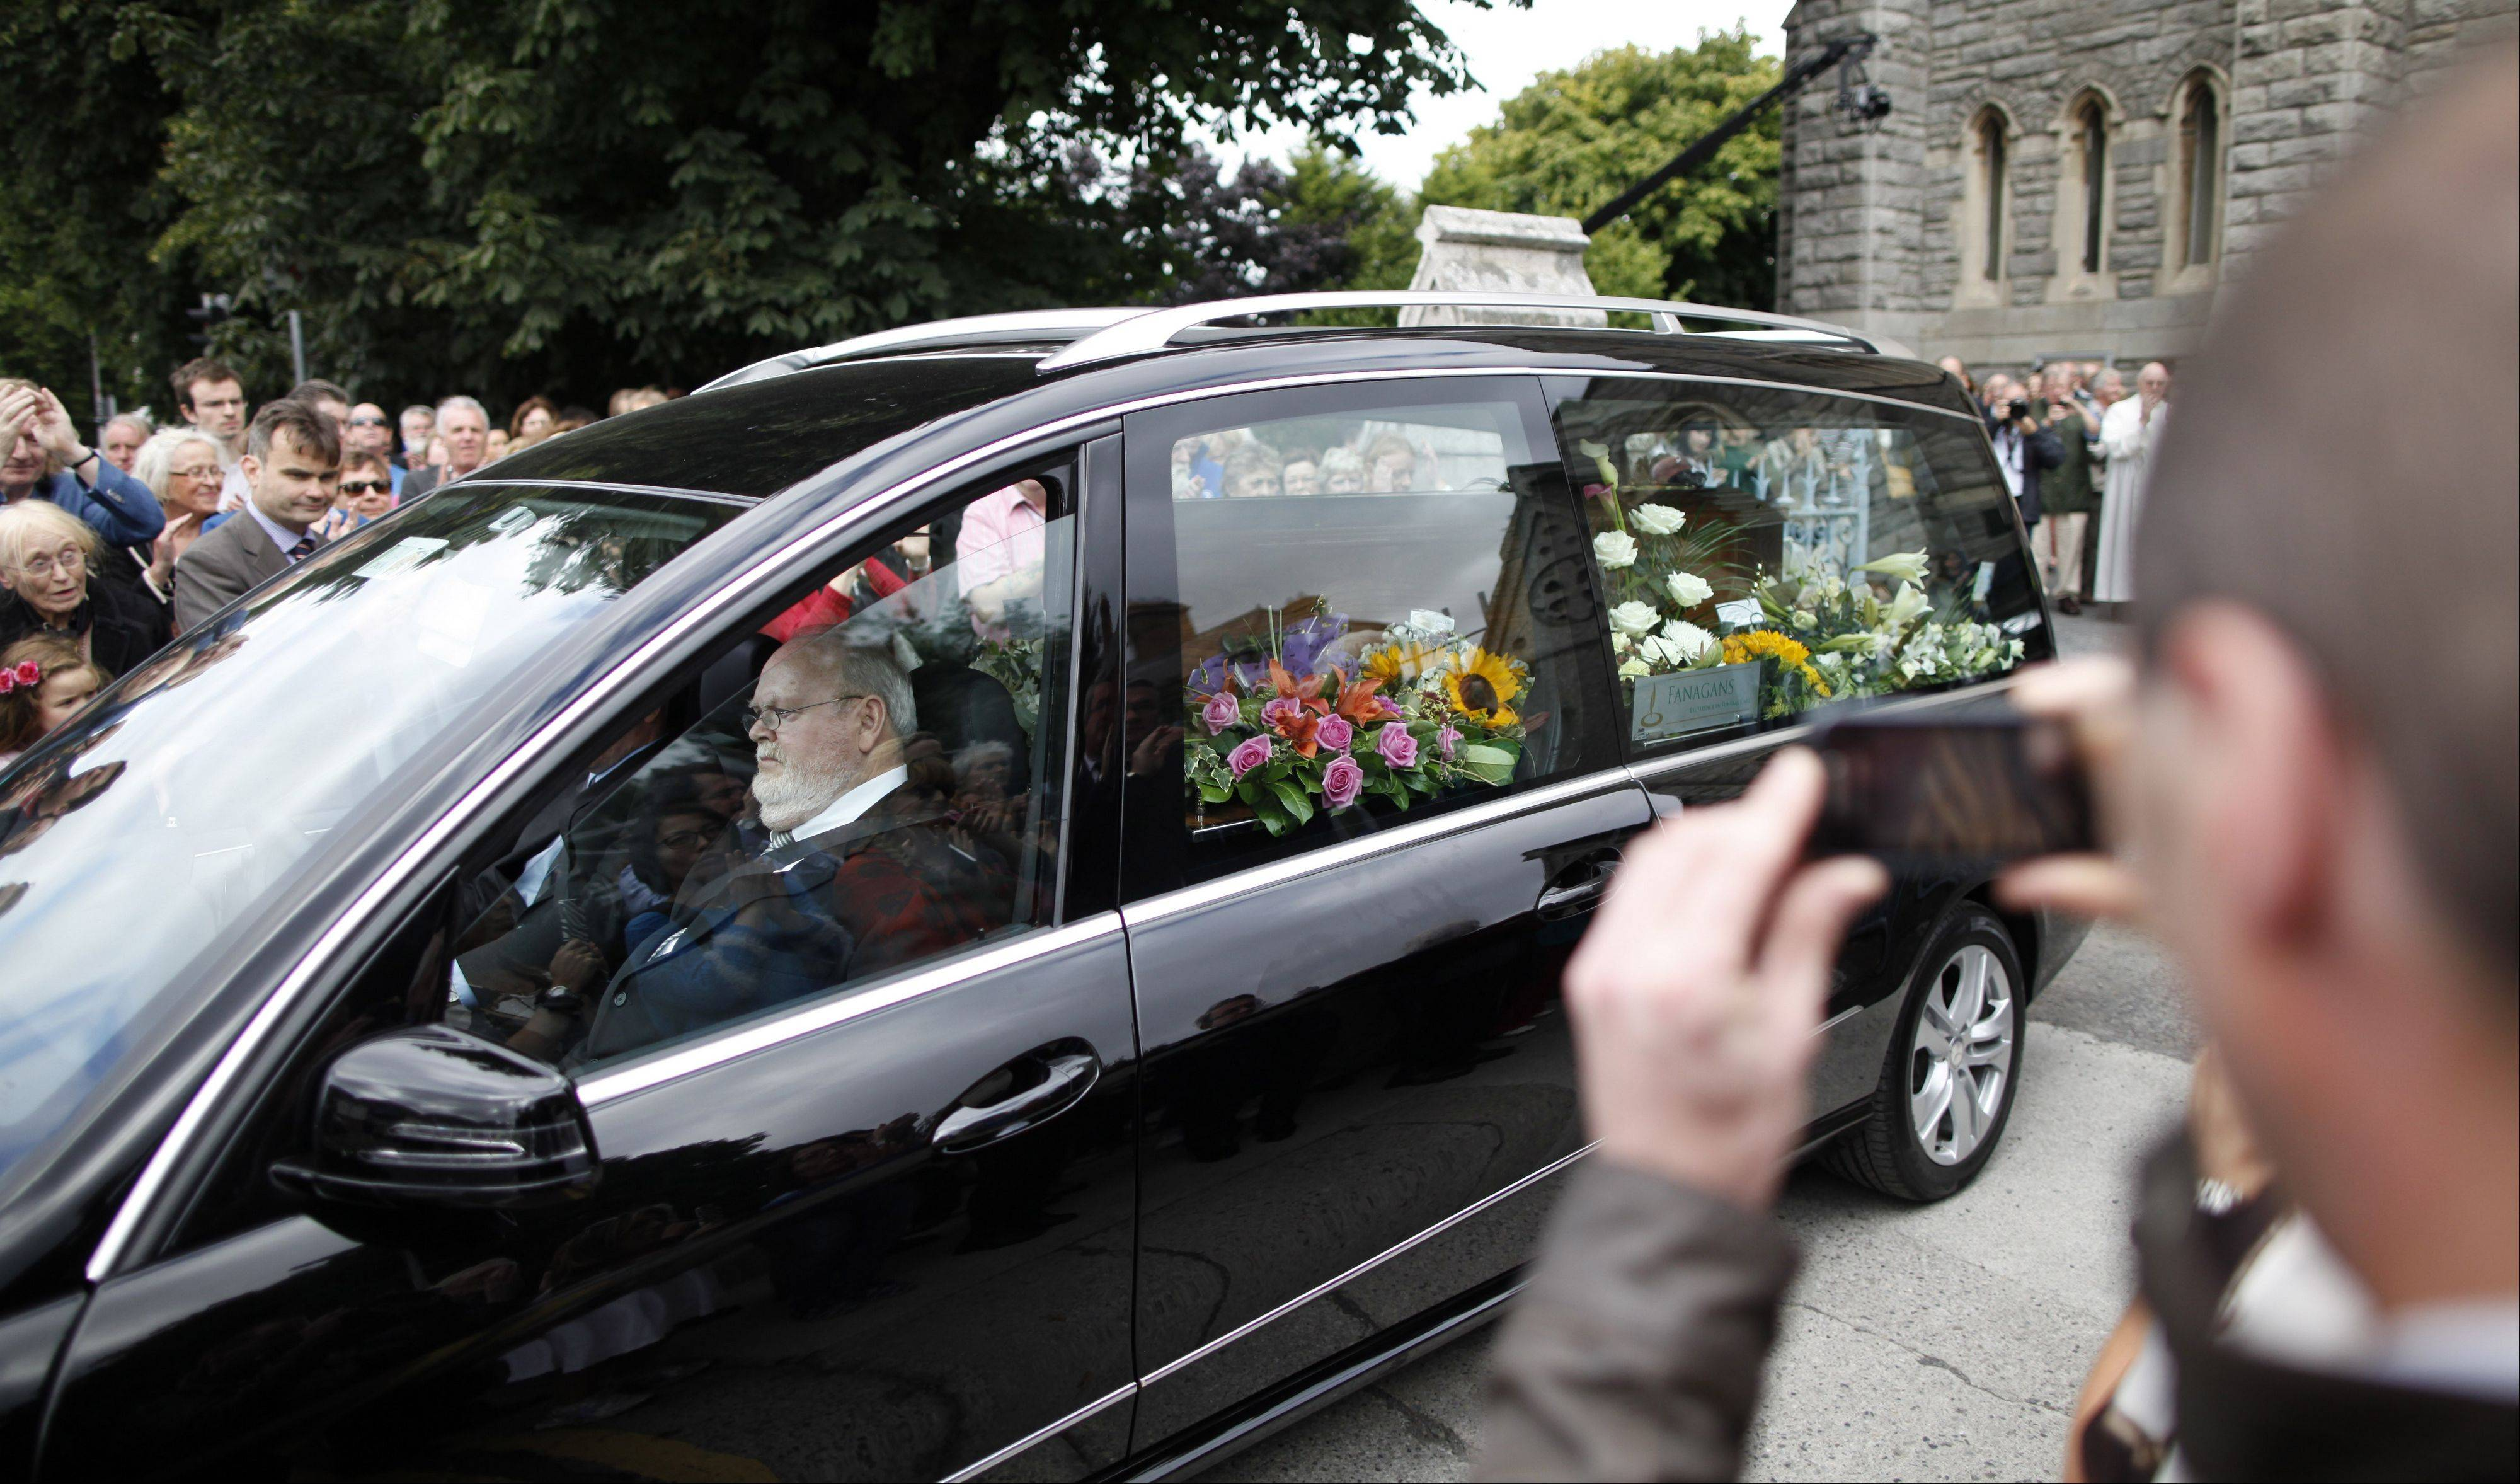 People watch the coffin of Irish poet Seamus Heaney leave the Church of the Sacred Heart in Donnybrook, Dublin, Ireland, Monday, Sept. 2, 2013. Heaney who died aged 74, won the 1995 Nobel Prize for Literature �for works of lyrical beauty and ethical depth, which exalt everyday miracles and the living past�. He was widely considered Ireland�s greatest poet since William Butler Yeats.